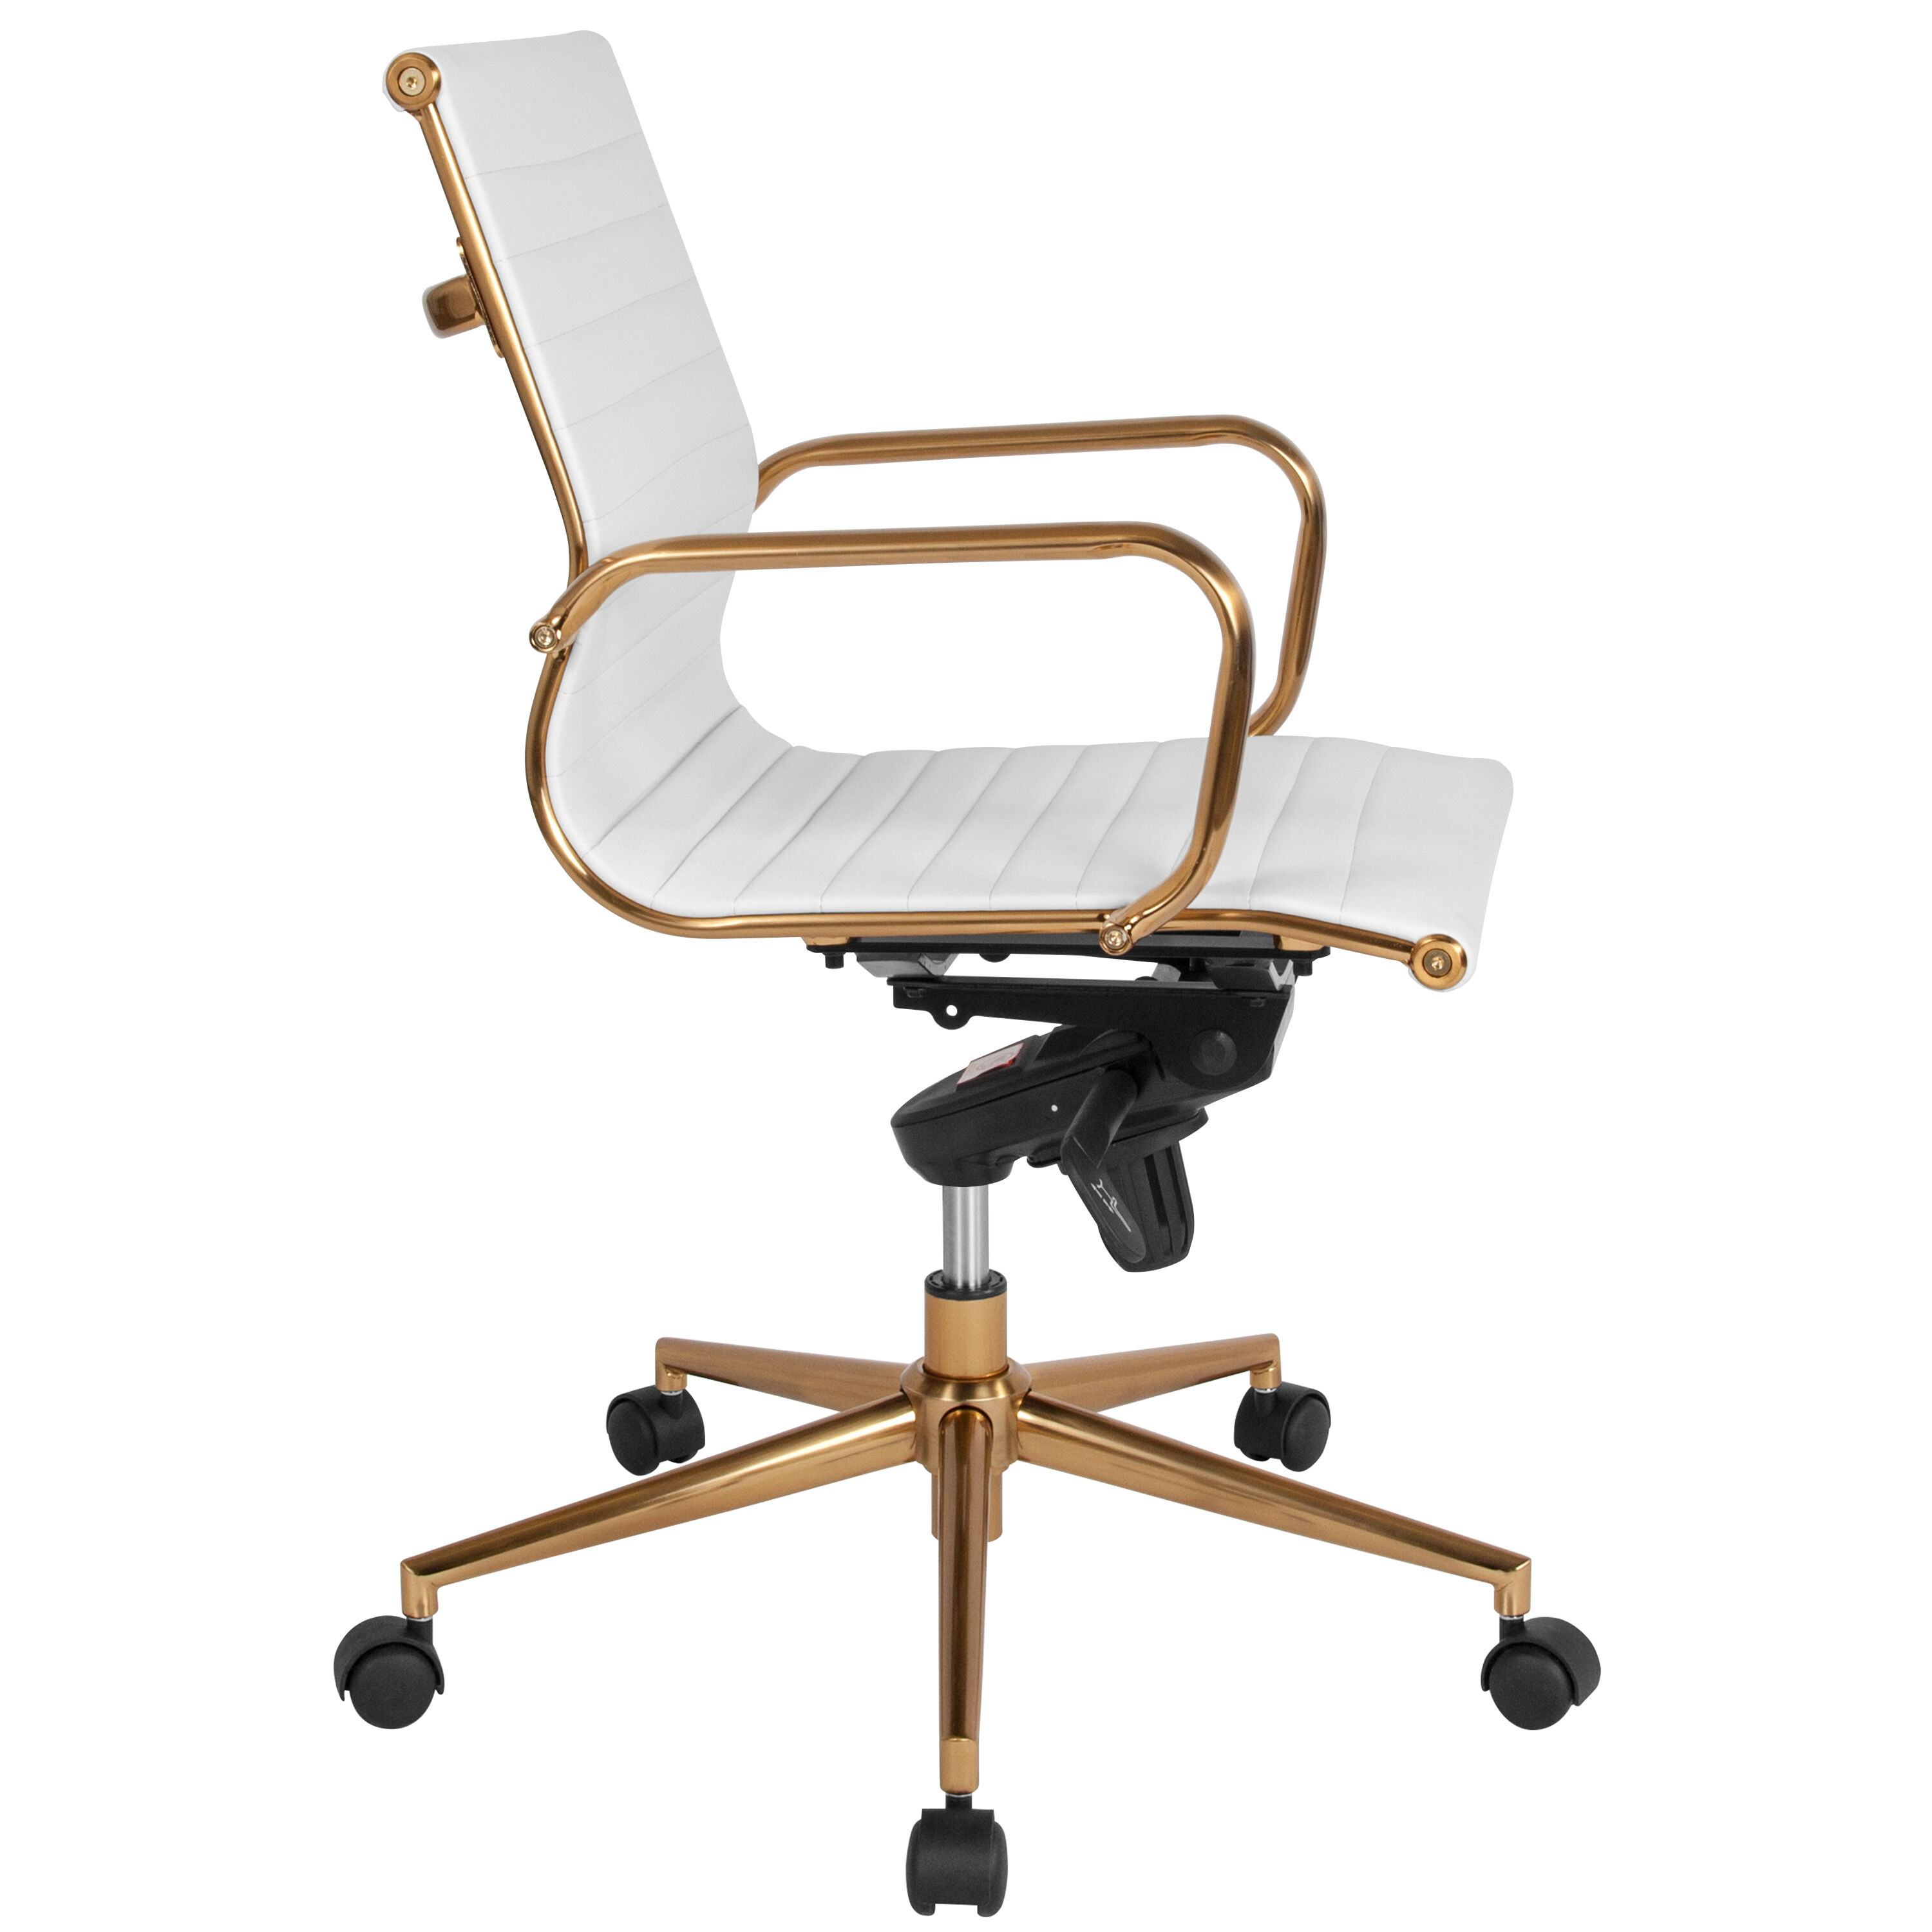 white leather swivel desk chair lace covers mid back office bt 9826m wh gd gg bizchair com